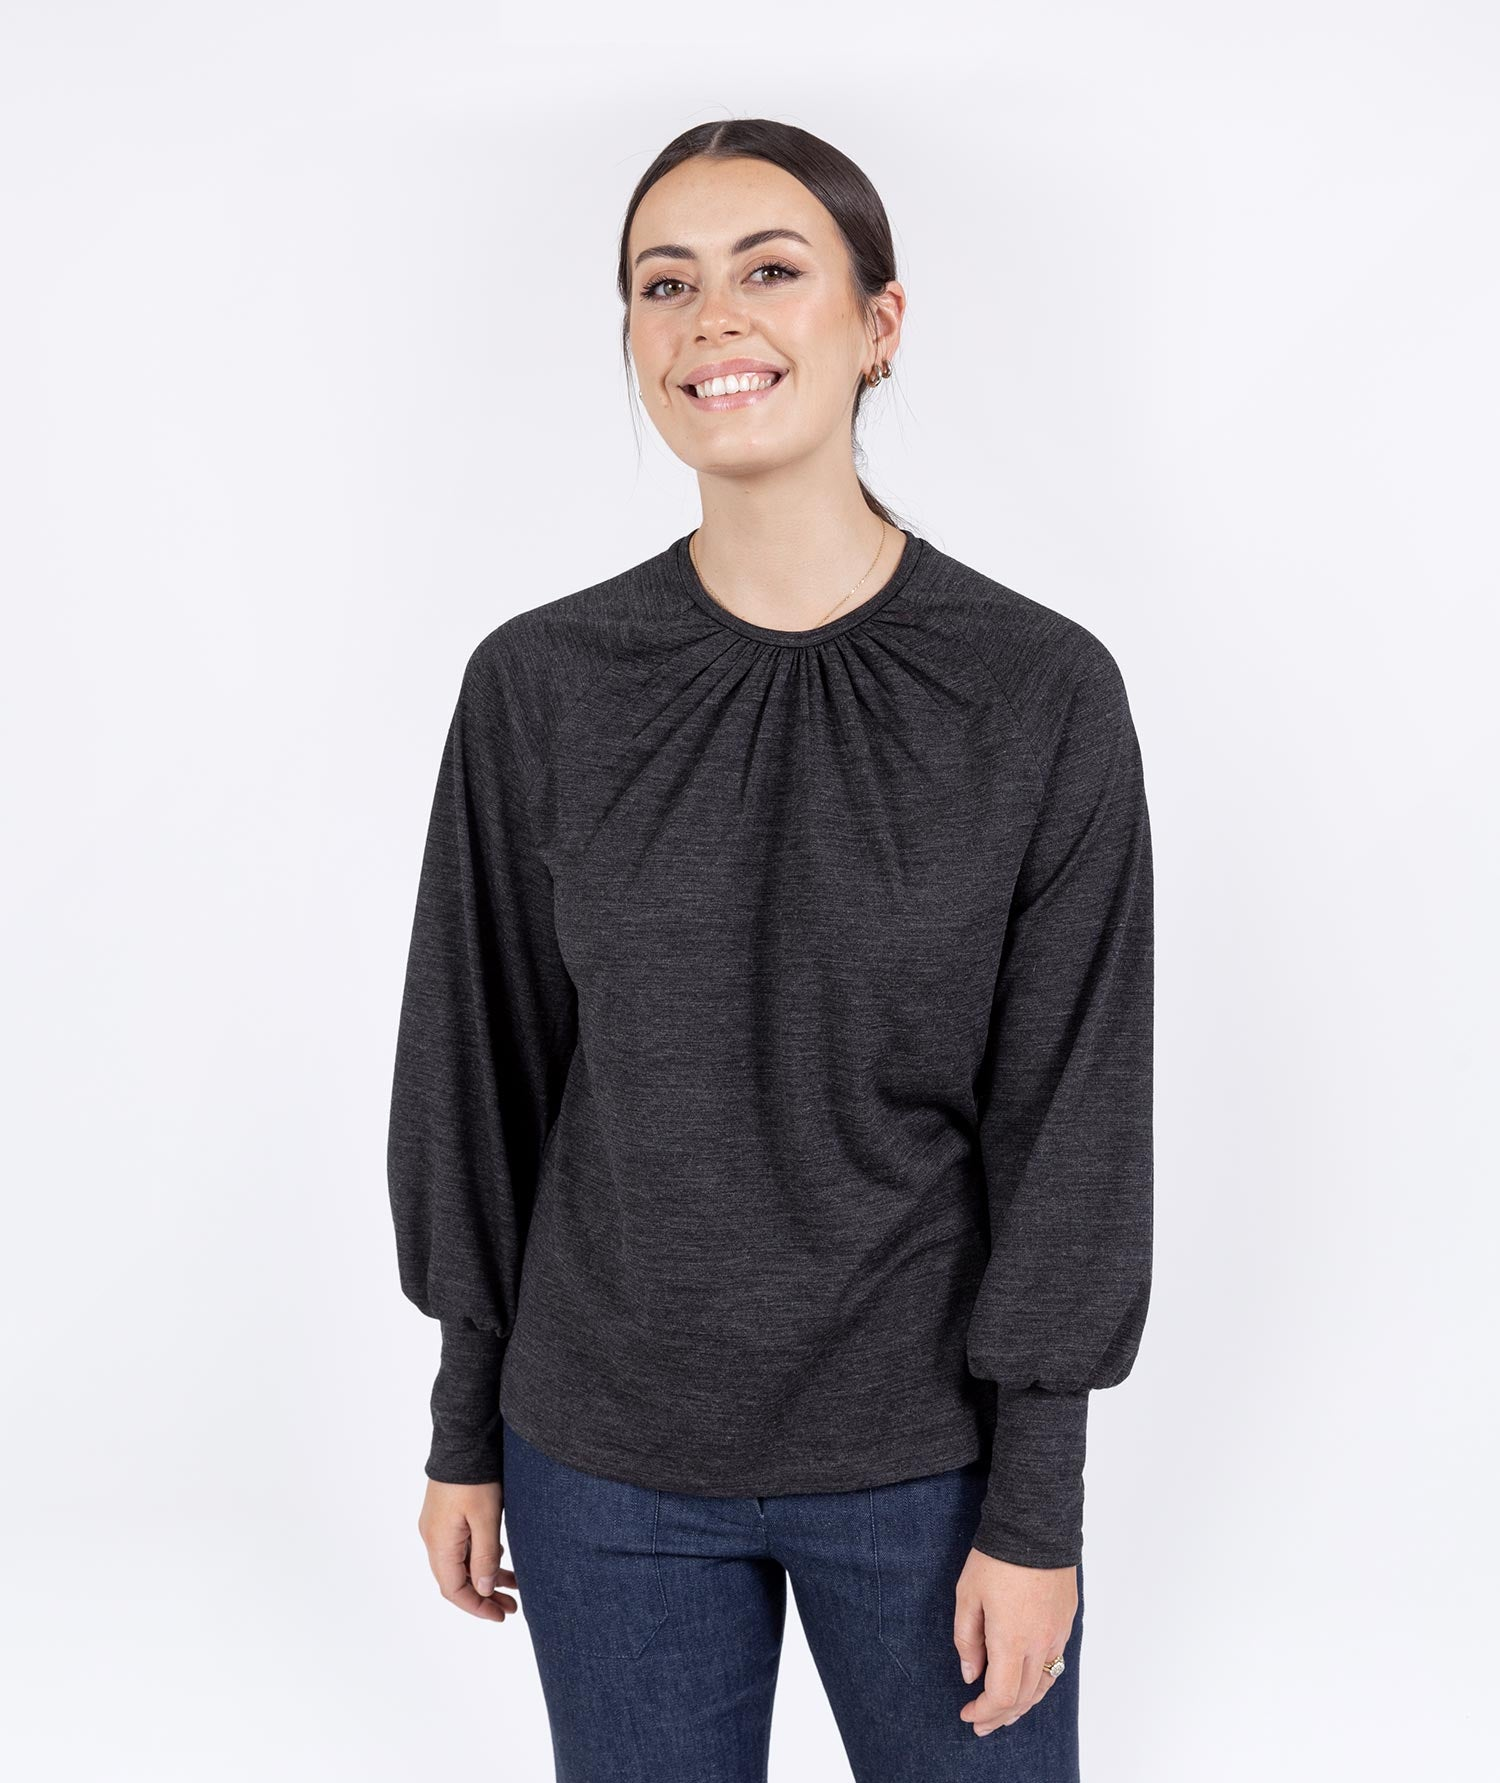 Full sleeve charcoal top with flare indigo pant